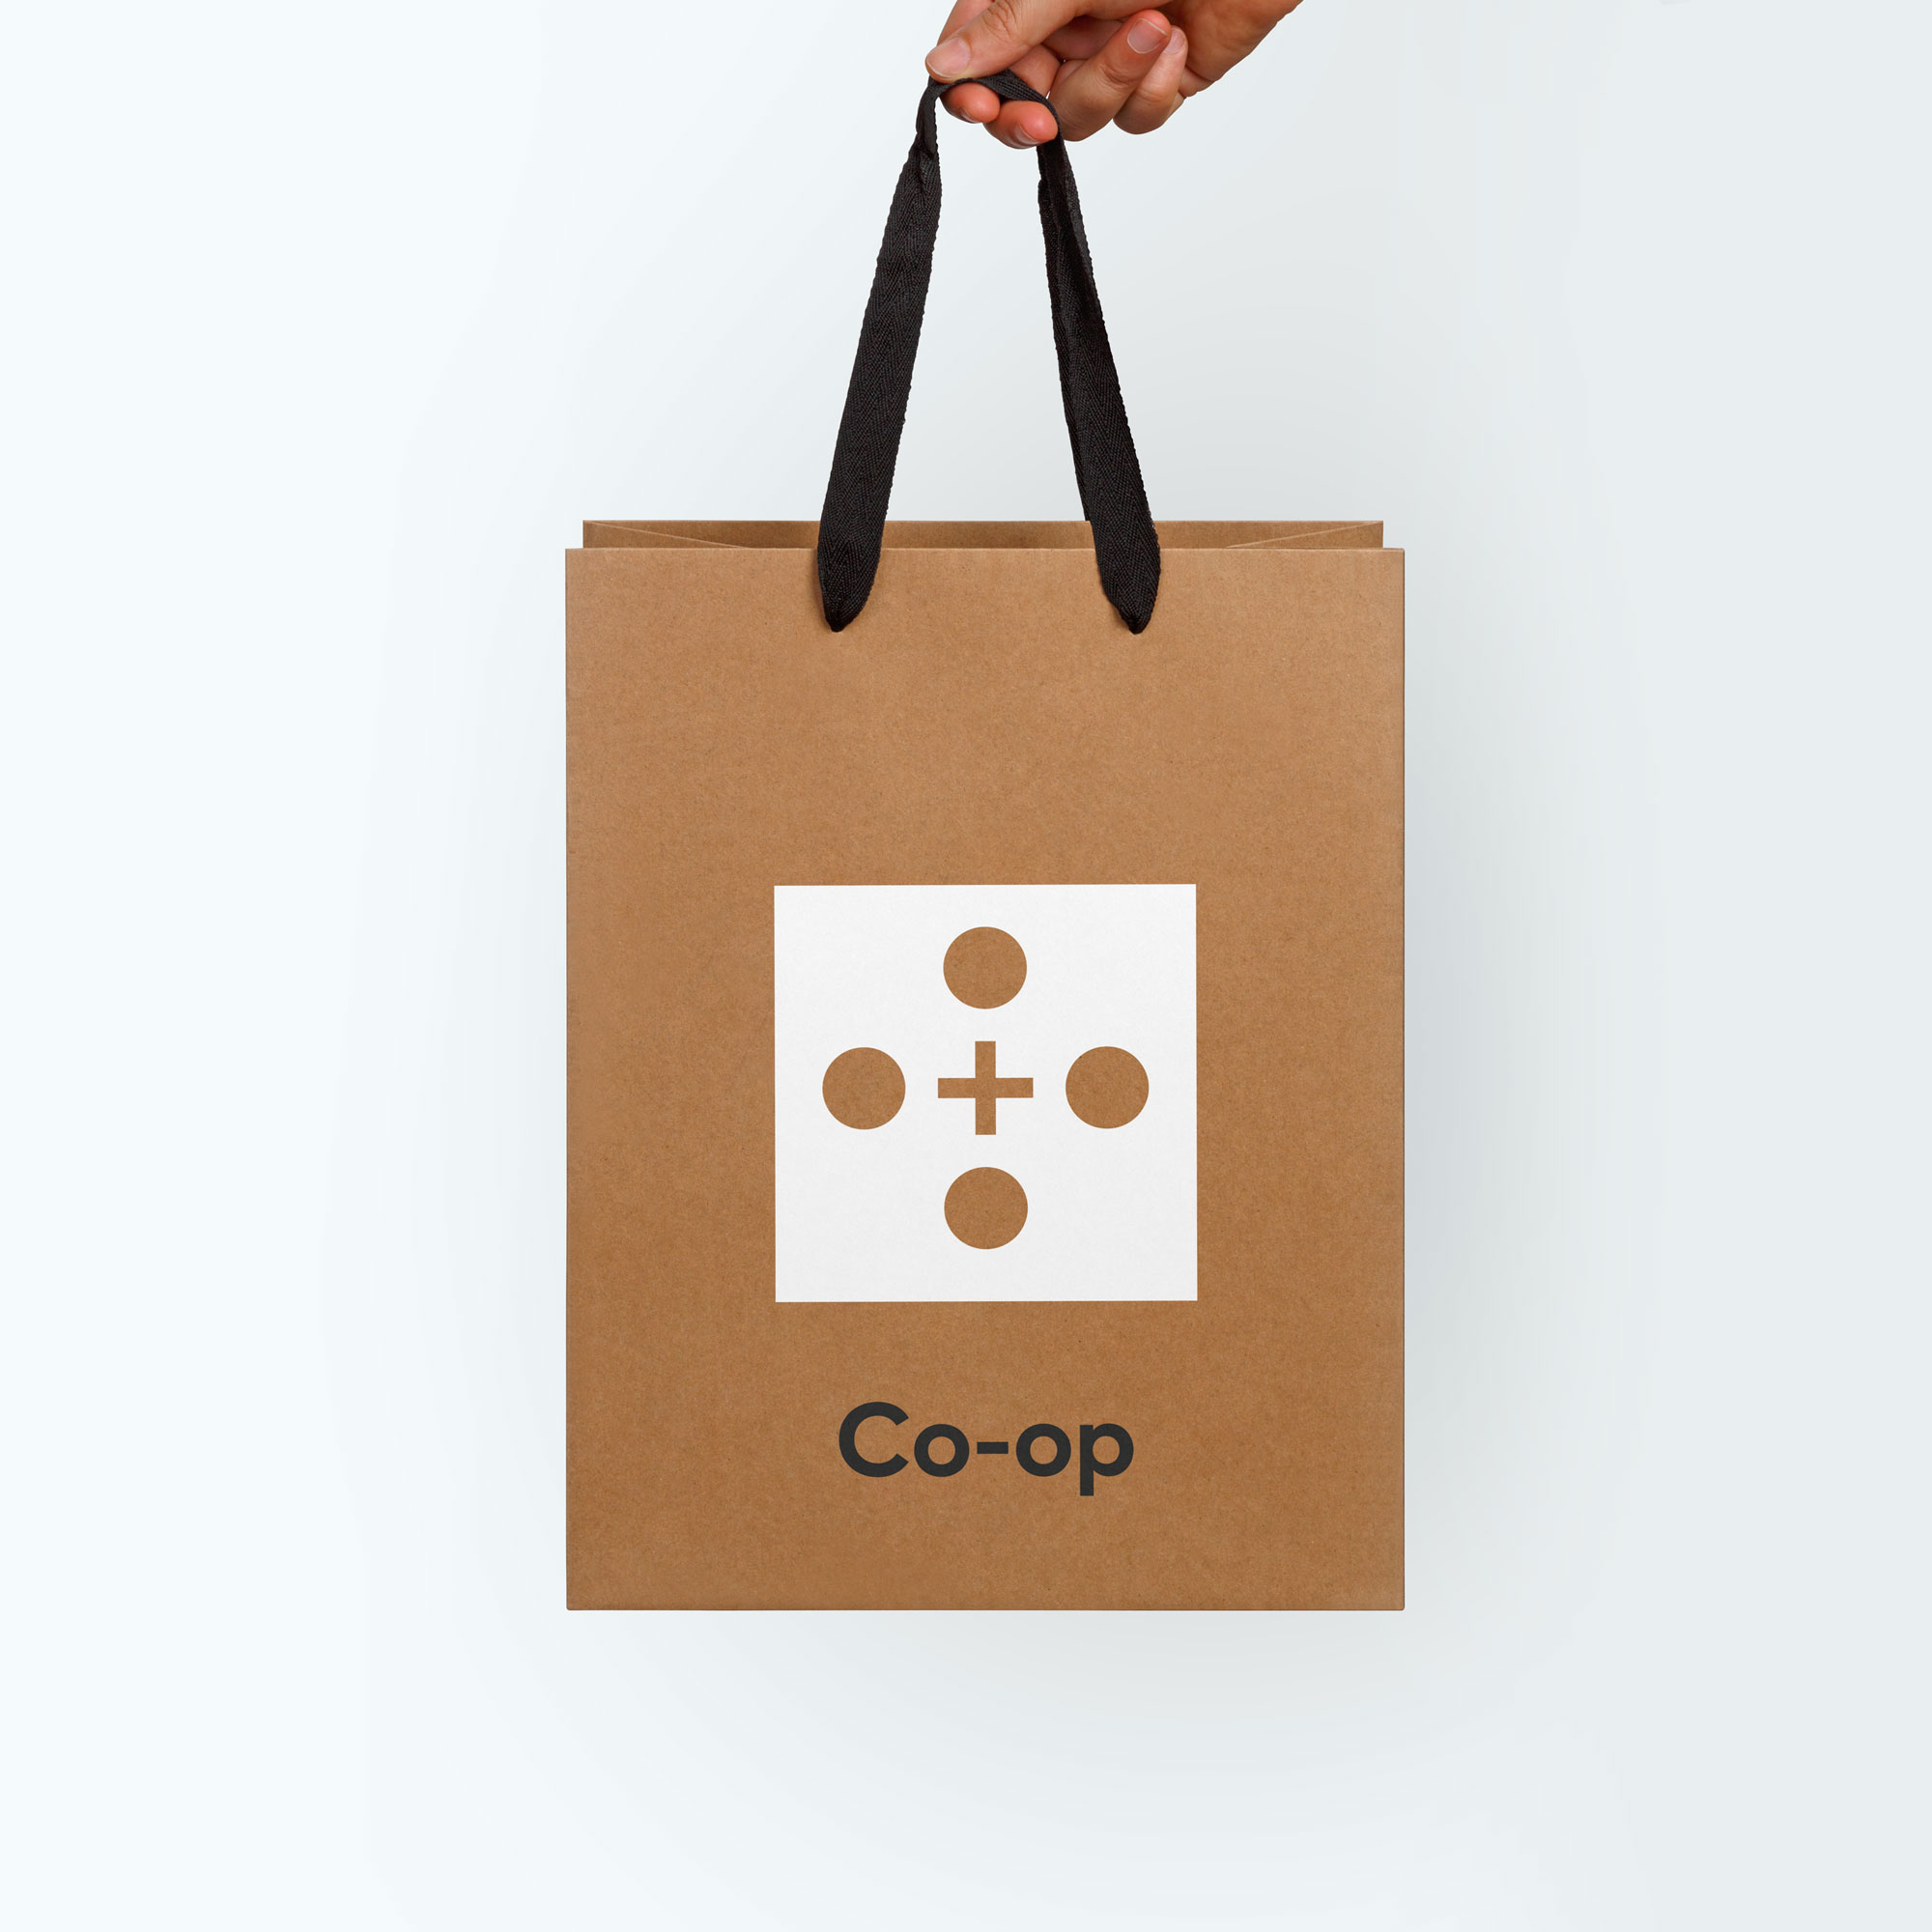 andreas_weiland_first_round_coop_bag